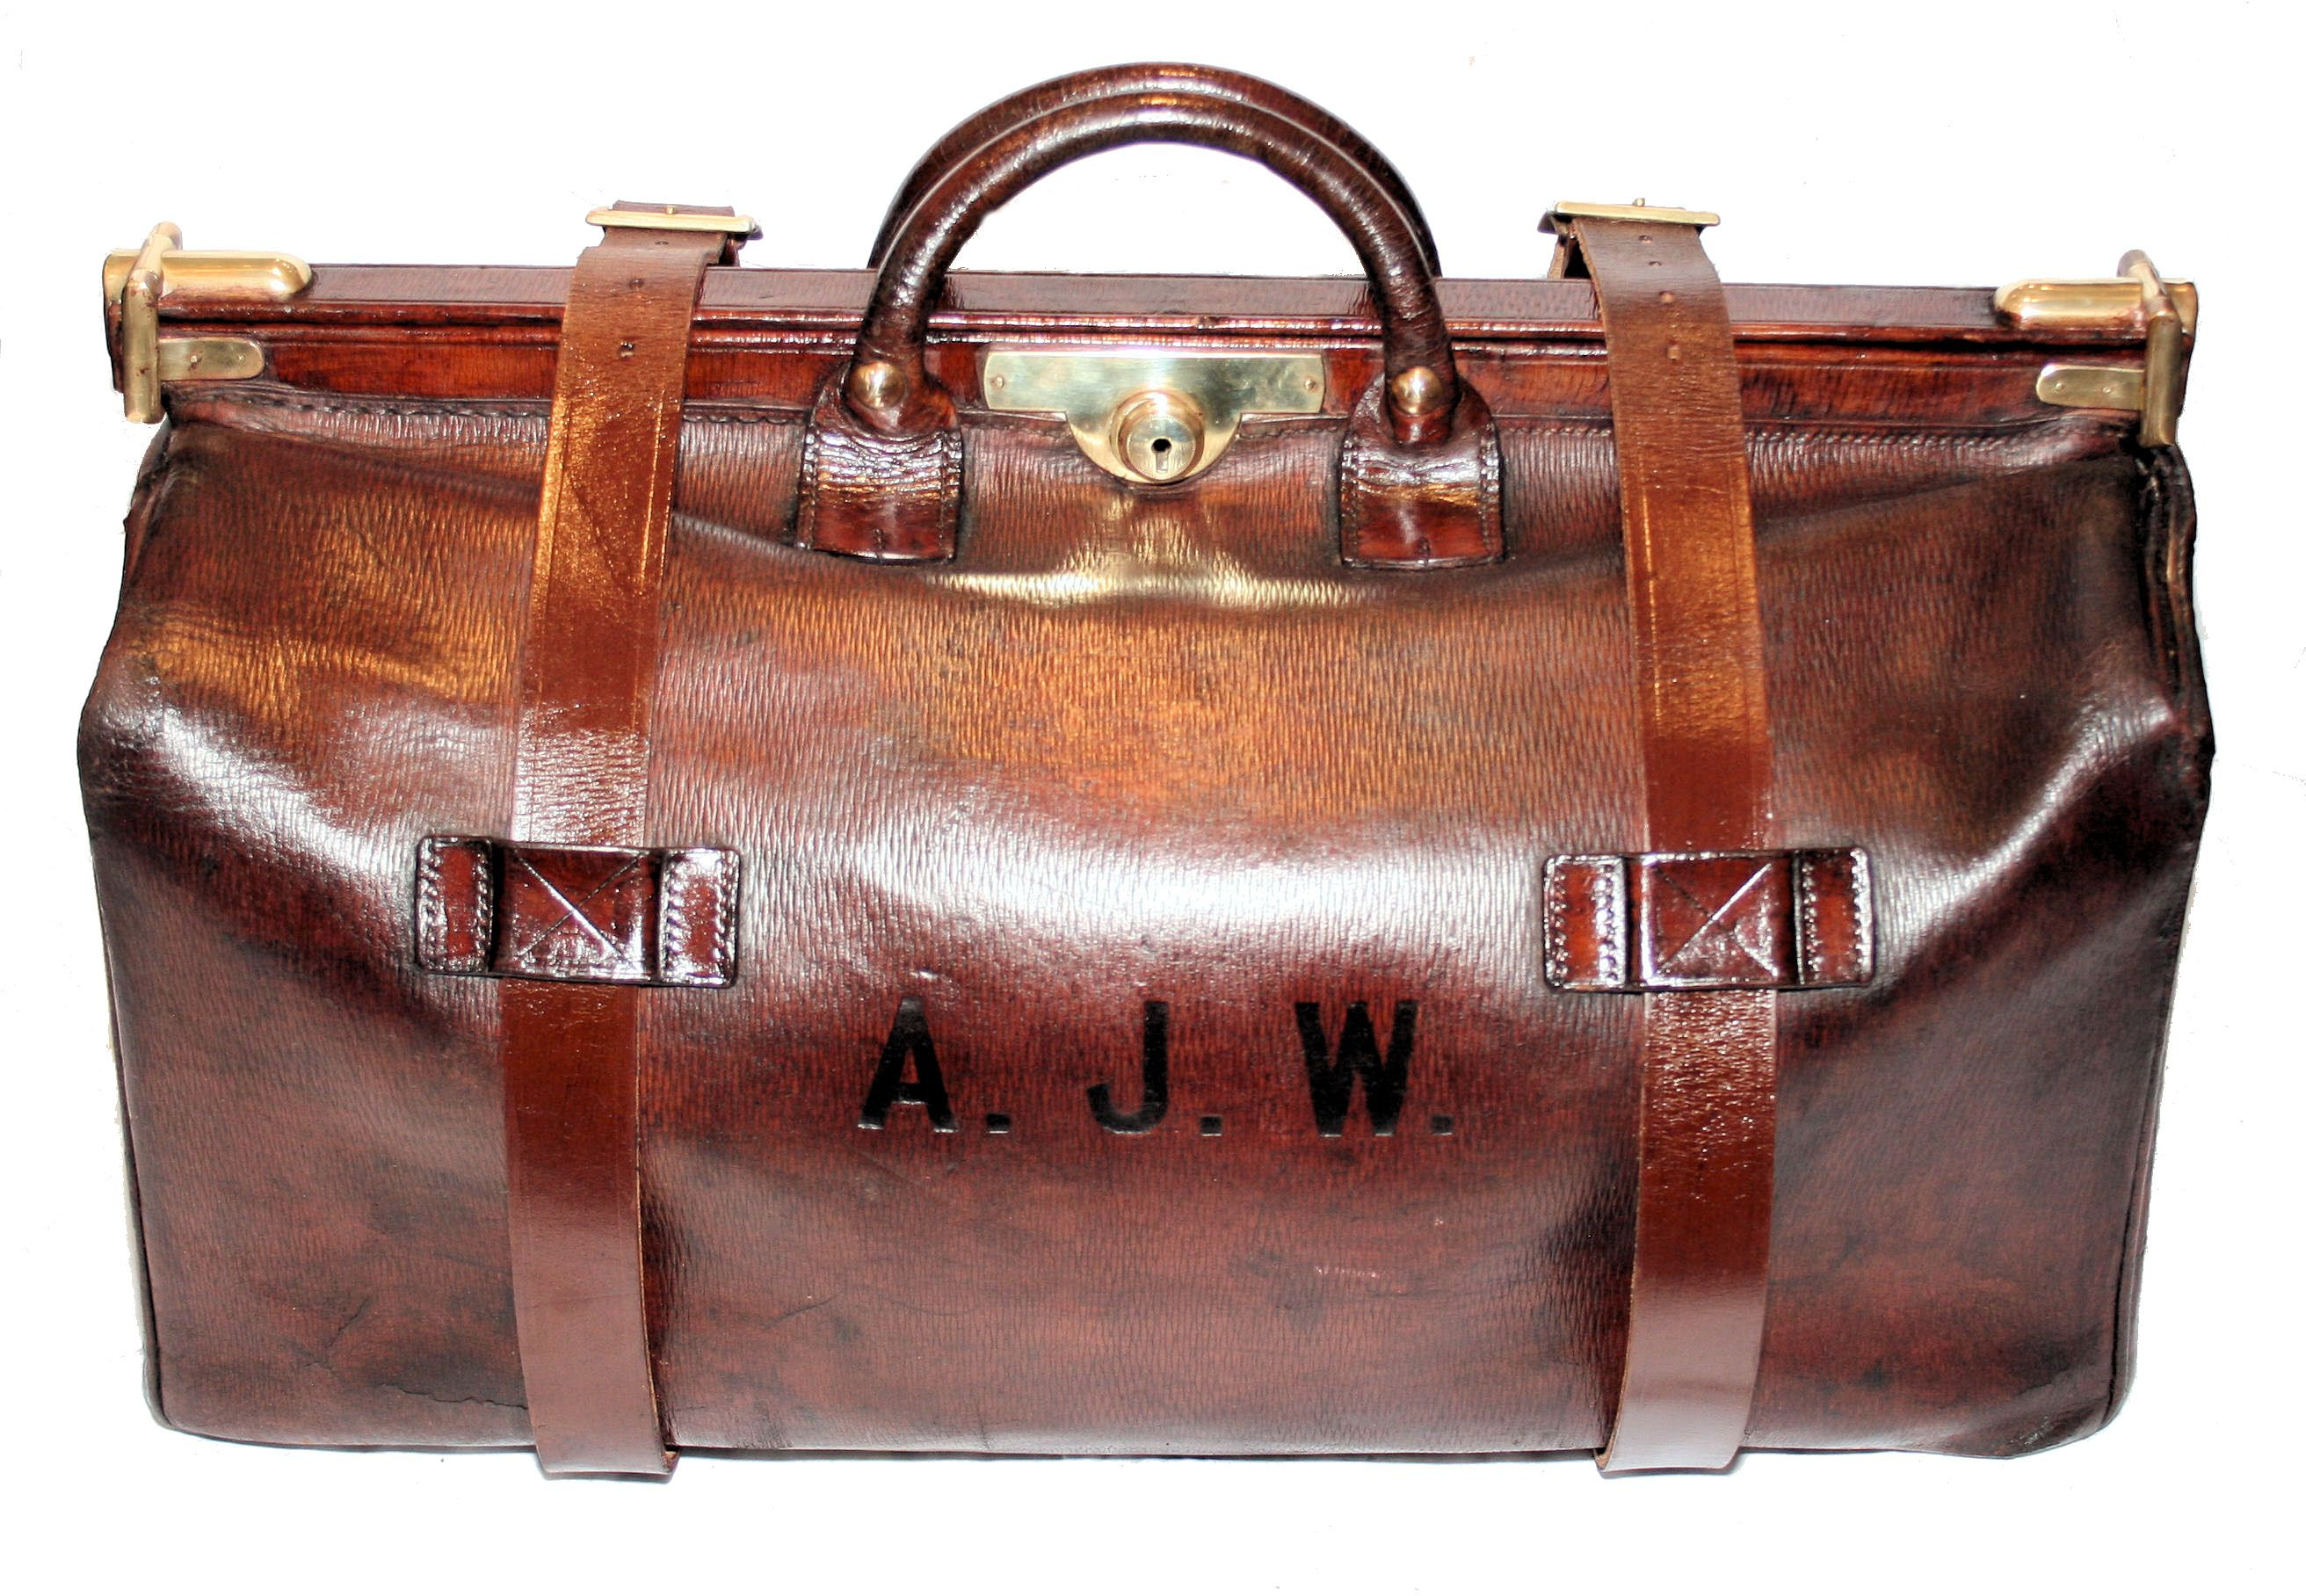 impressive large vintage leather gladstone bag with brass trims and lock and dating back to the 1930s from angell antiques [ 2624 x 1816 Pixel ]